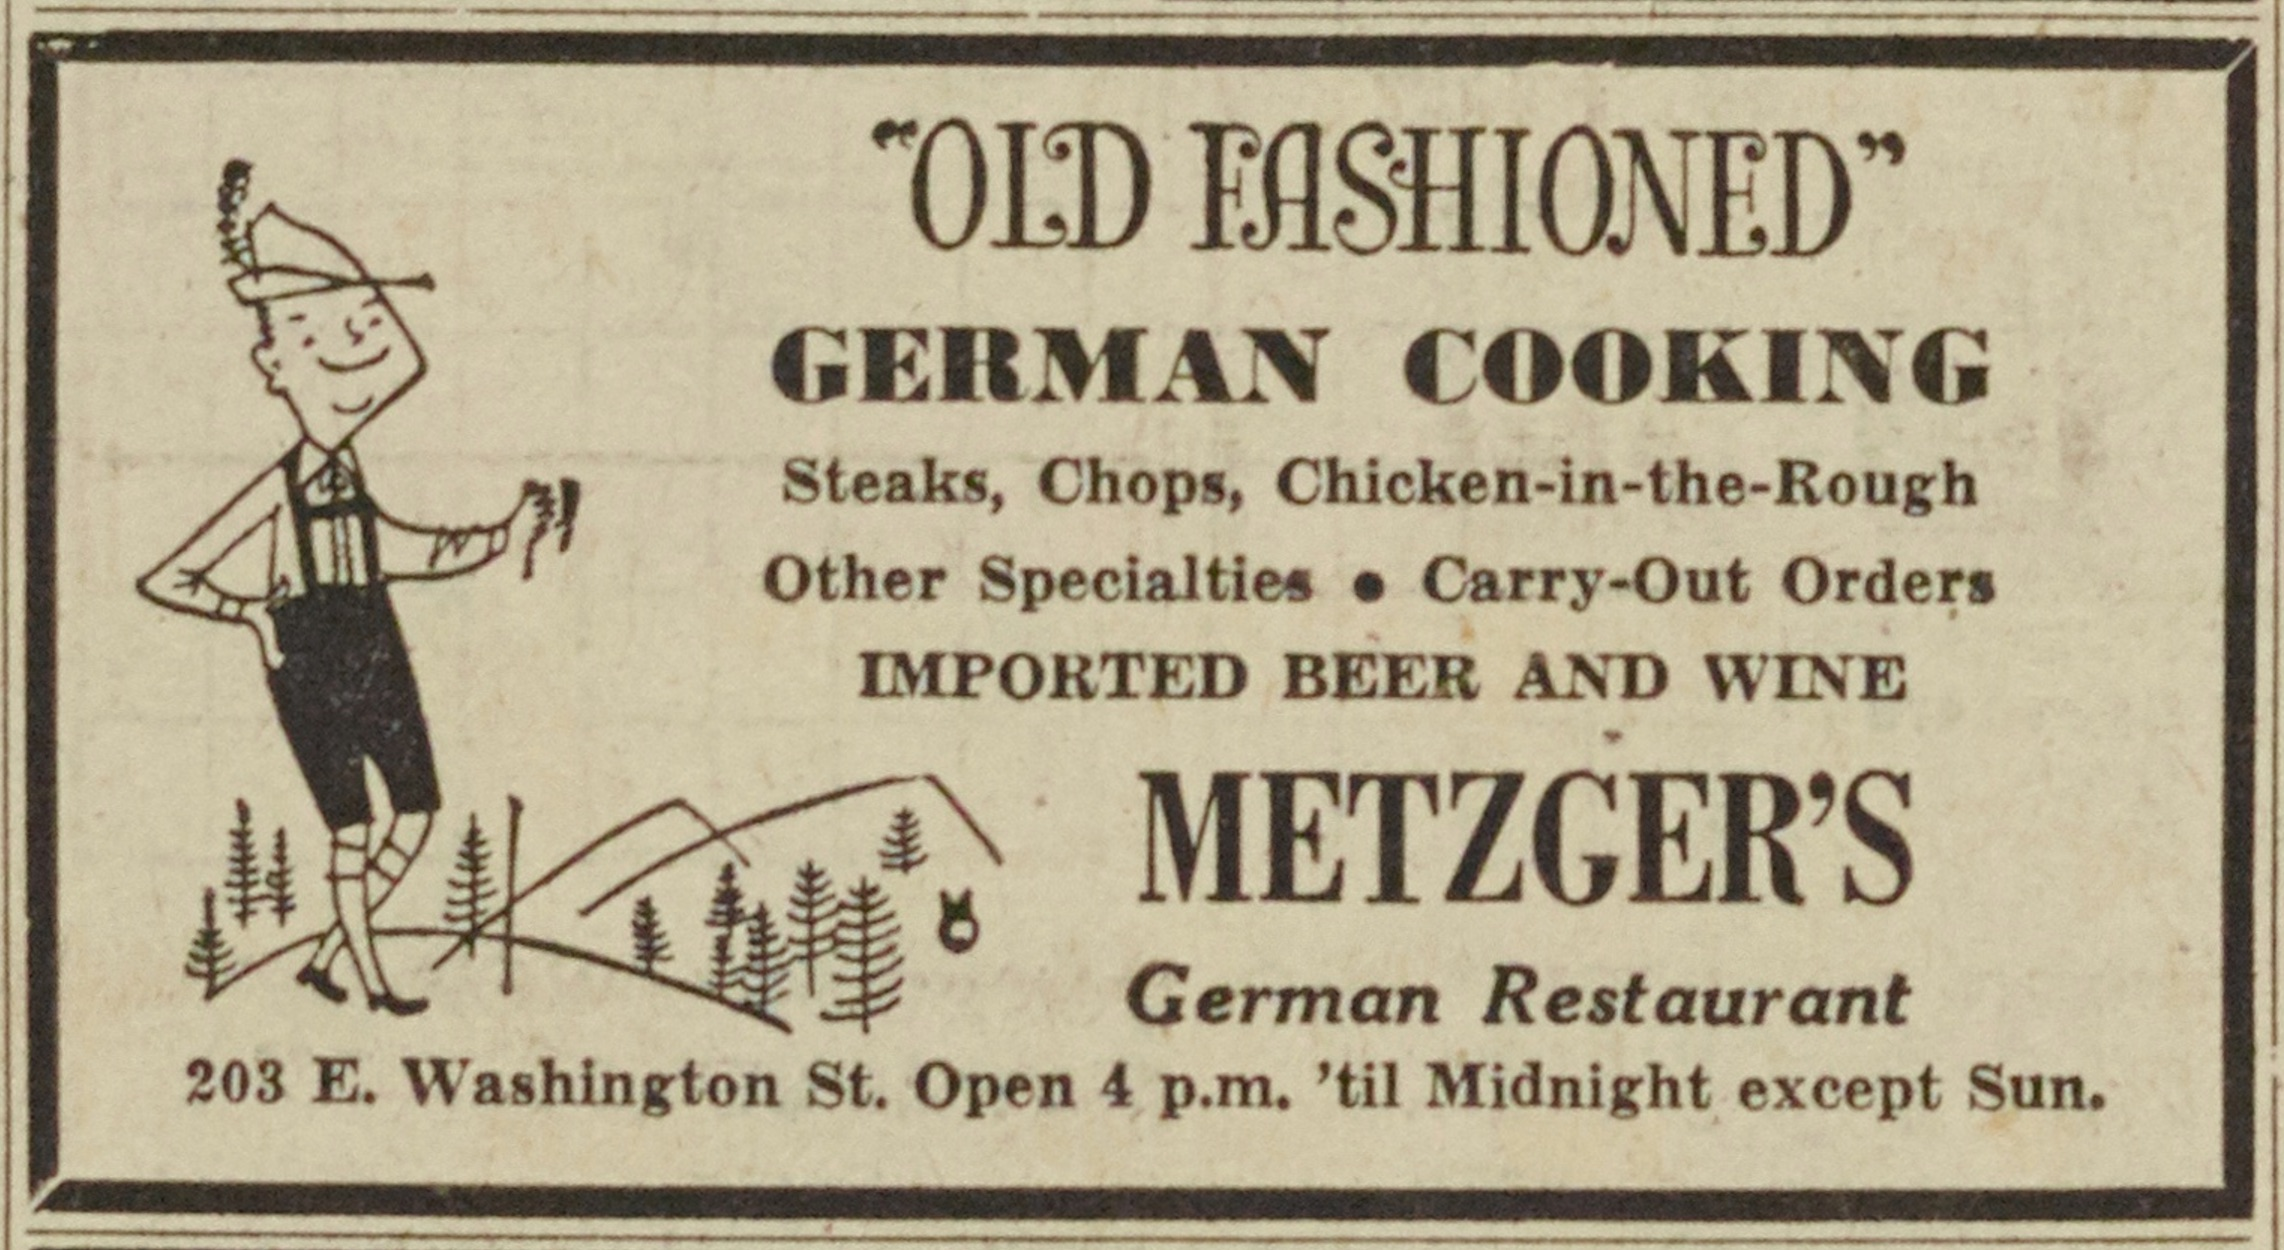 Metzger's German Restaurant image